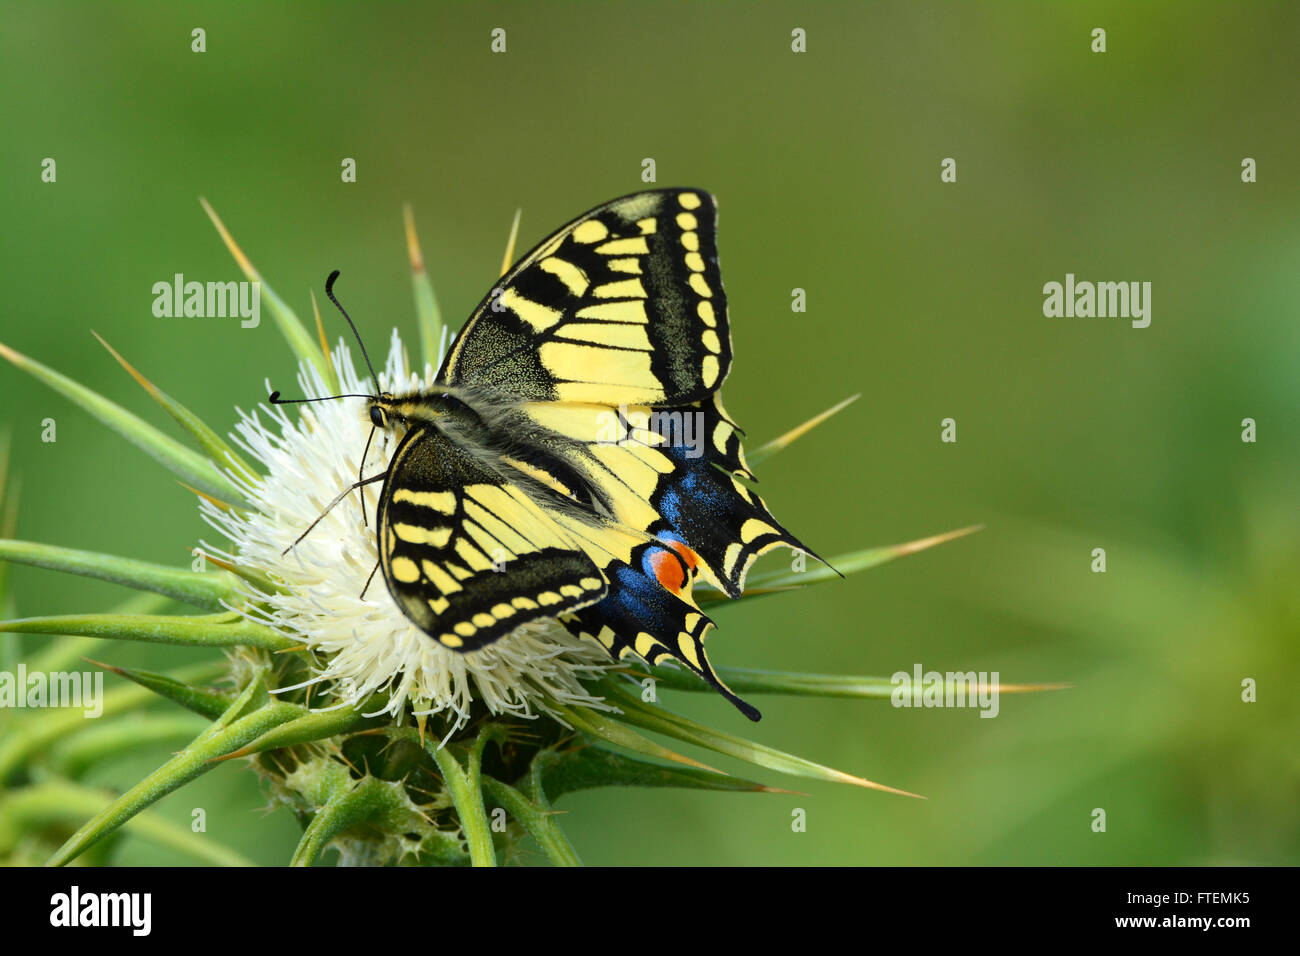 Swallowtail butterfly - Papilio machaon - on a thorn flower - Stock Image